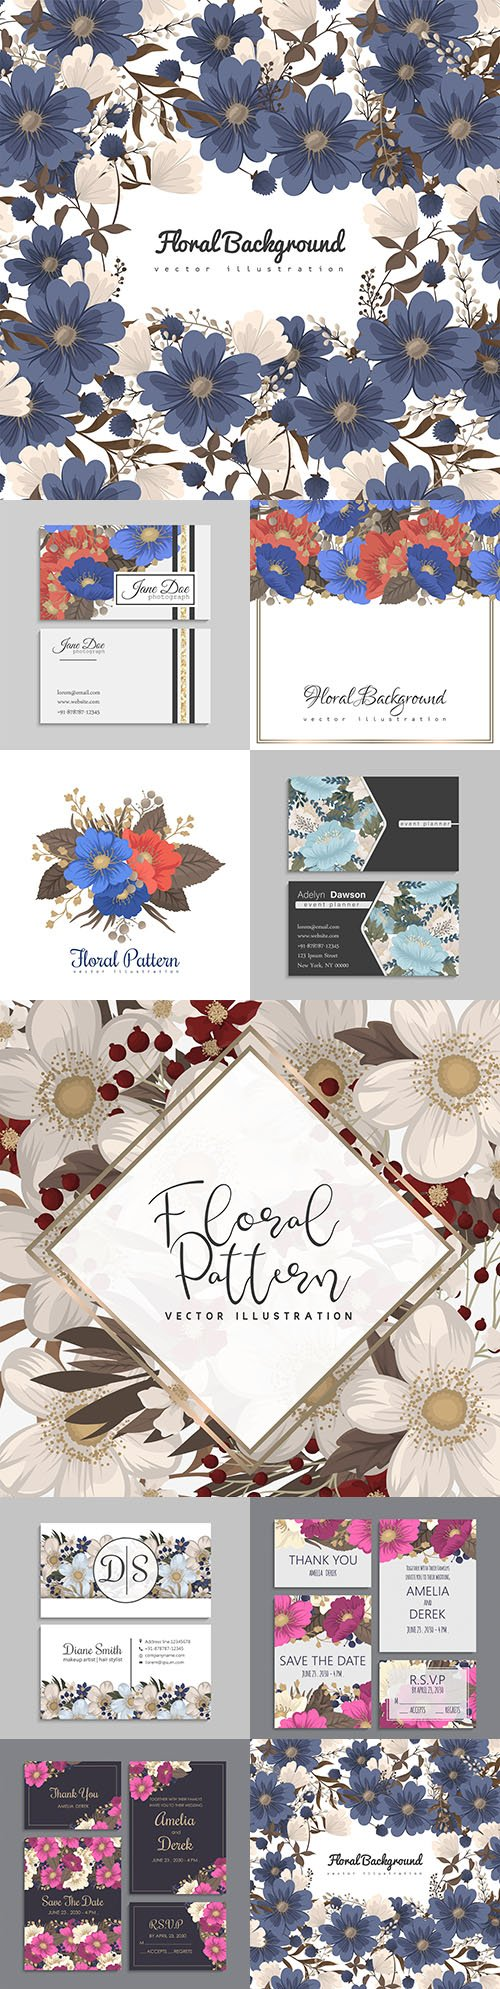 Business cards with flowers and decorative background